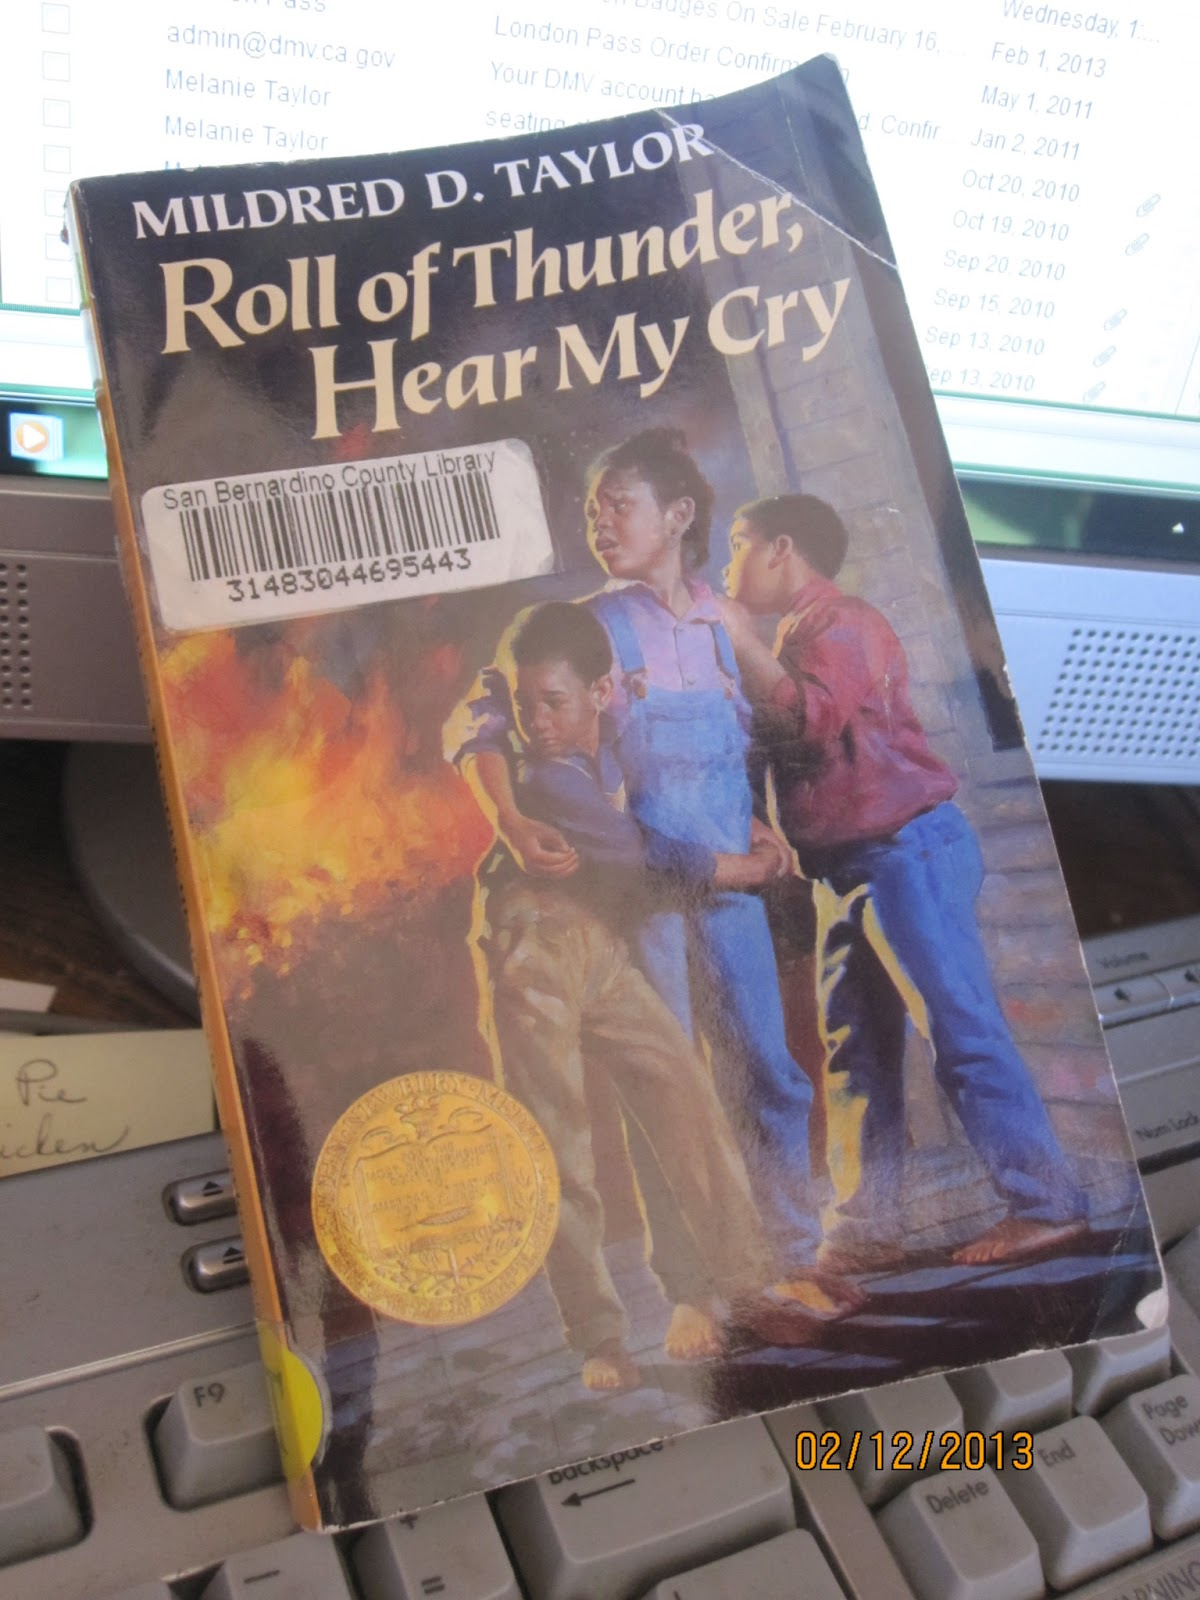 A review of mildred taylors reading roll of thunder hear my cry